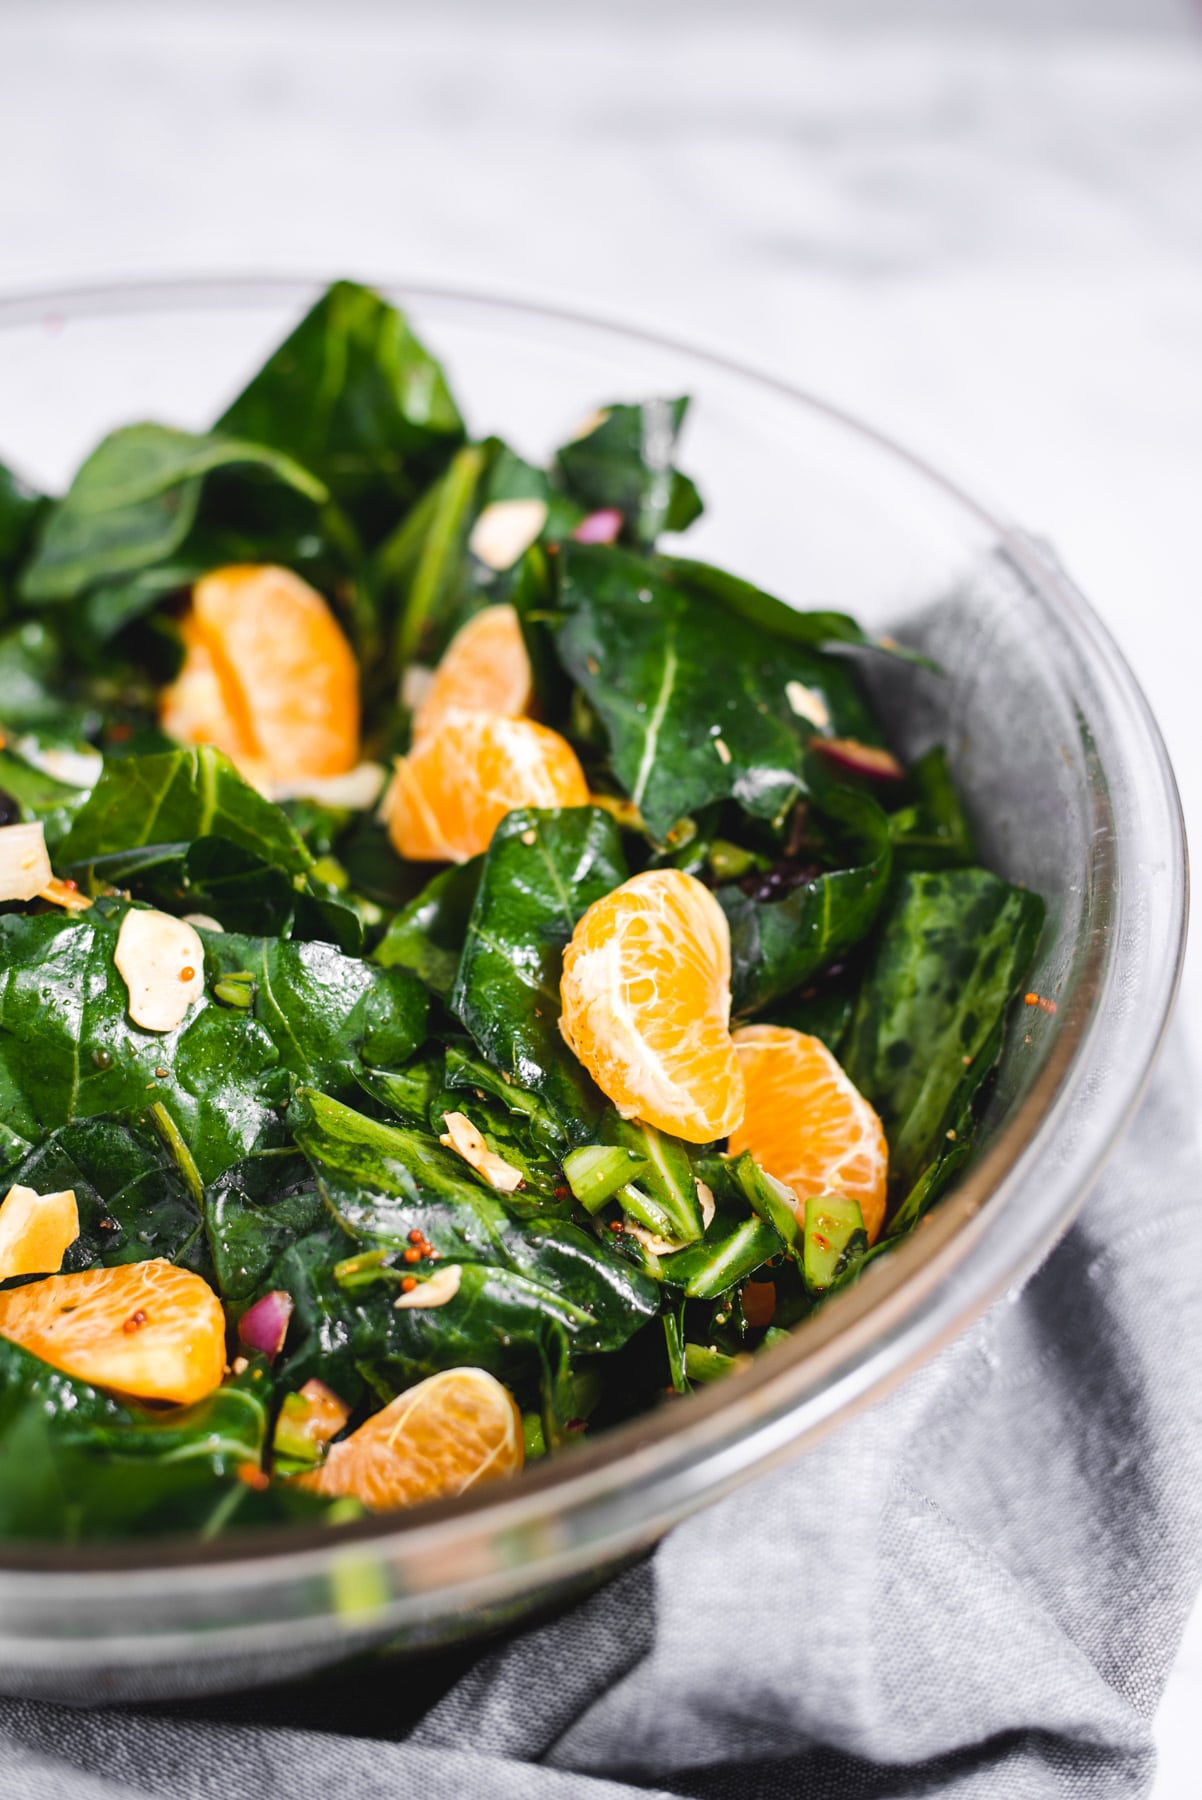 Close up of tangerine slices in a collard green salad